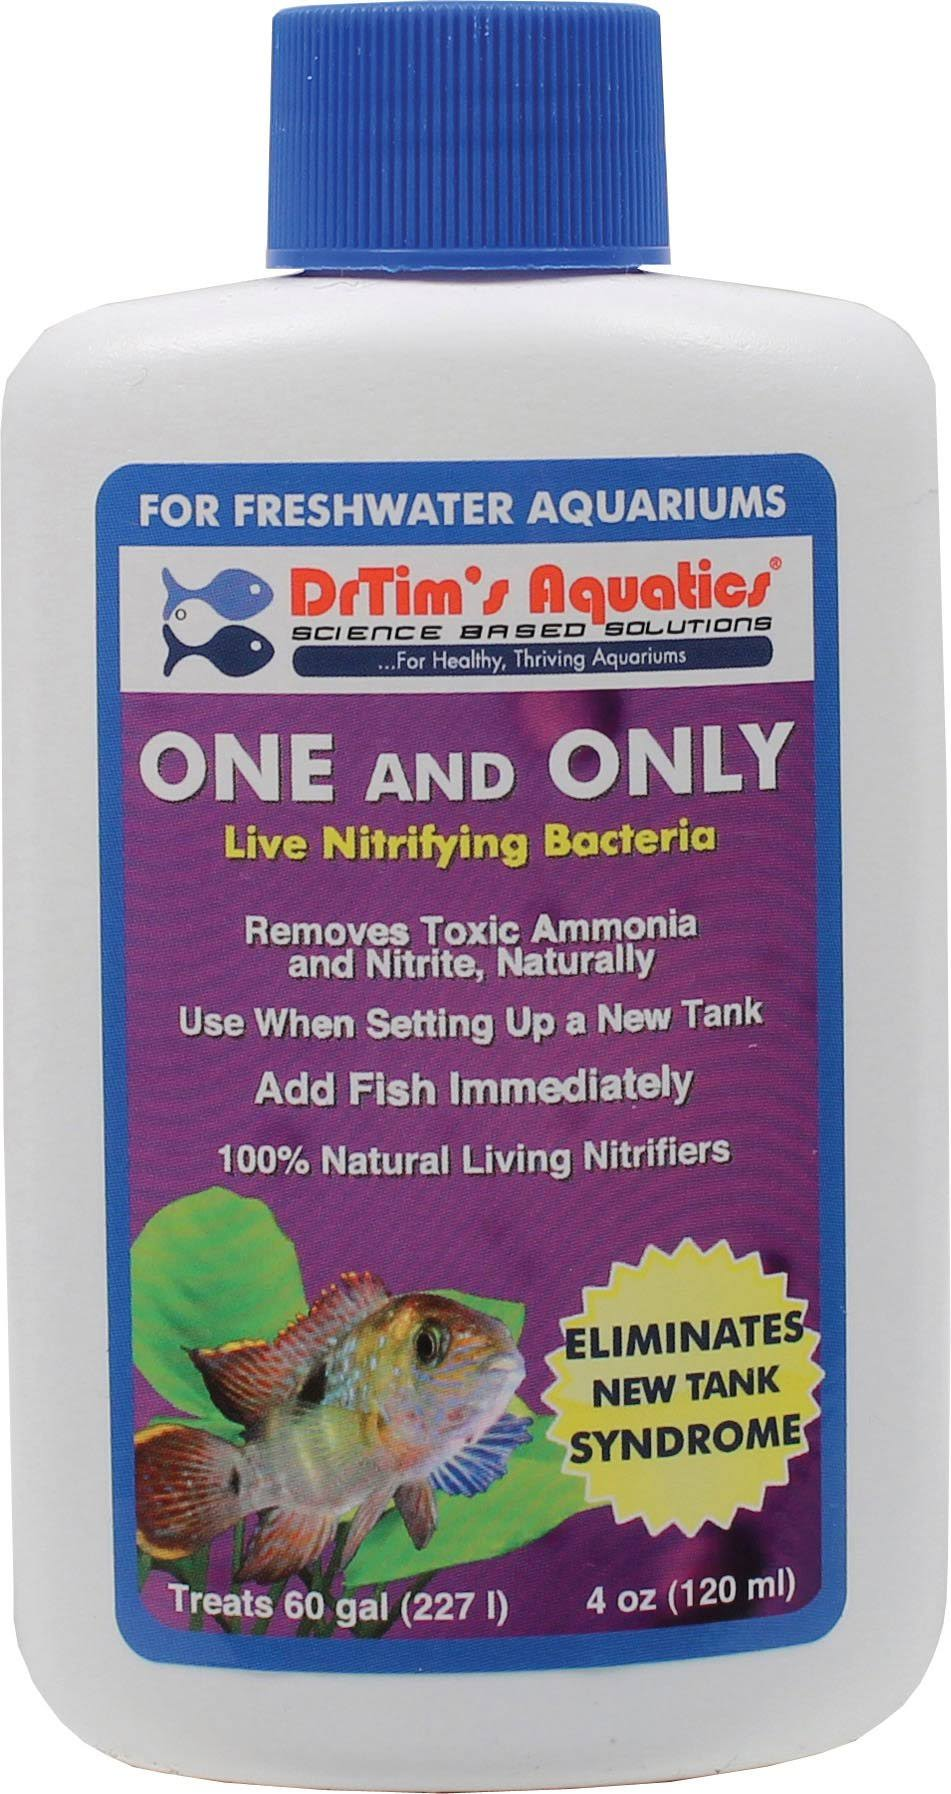 DrTim's Aquatics One and Only Live Nitrifying Bacteria for Cycling Aquaria - 4oz